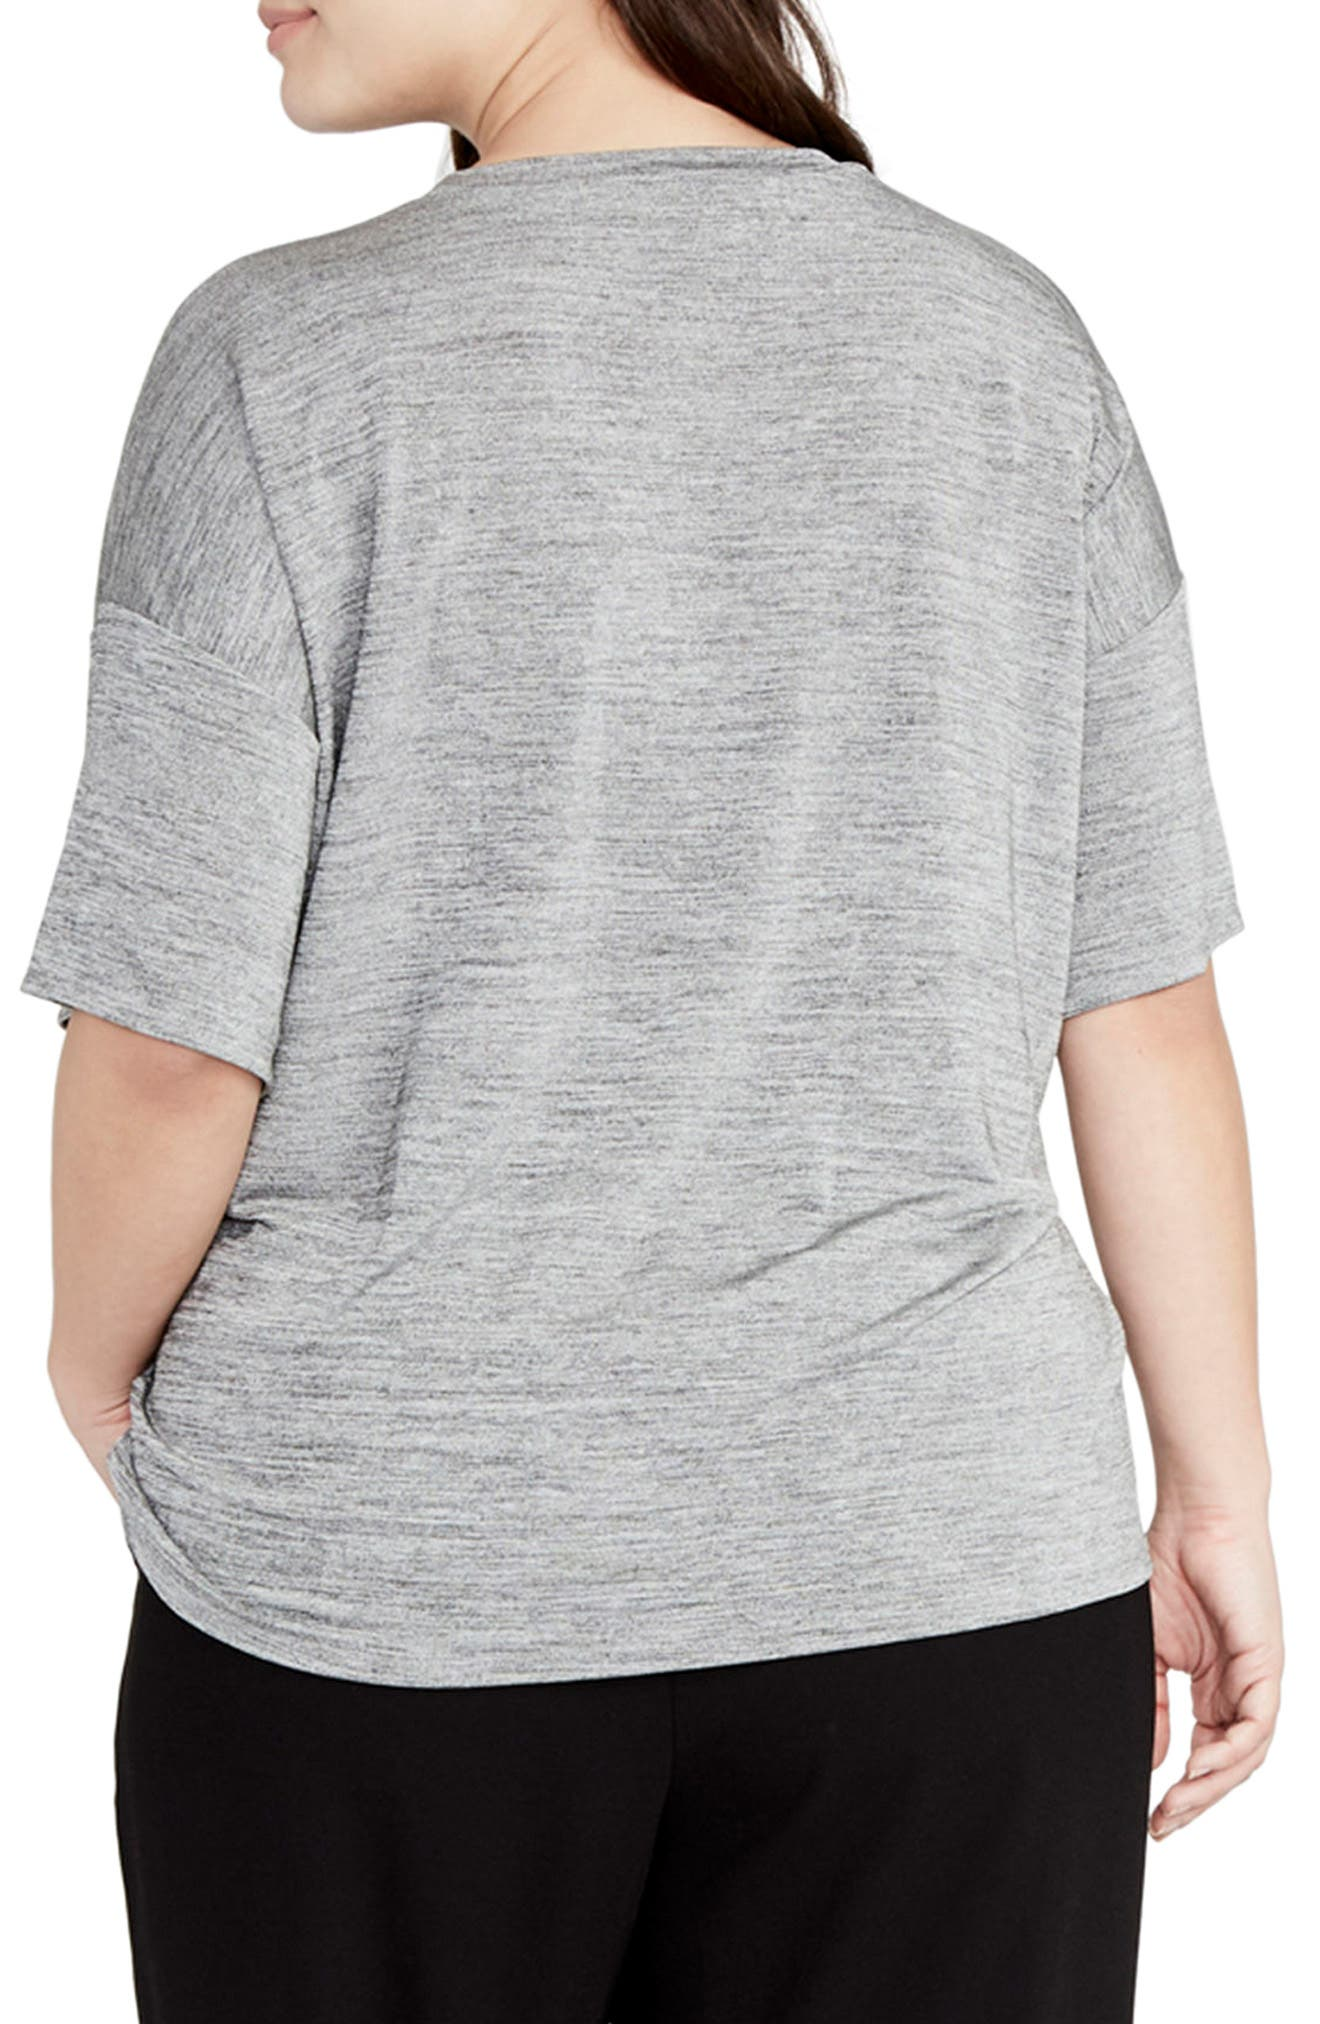 Deep V Boxy Tee,                             Alternate thumbnail 2, color,                             Heather Grey